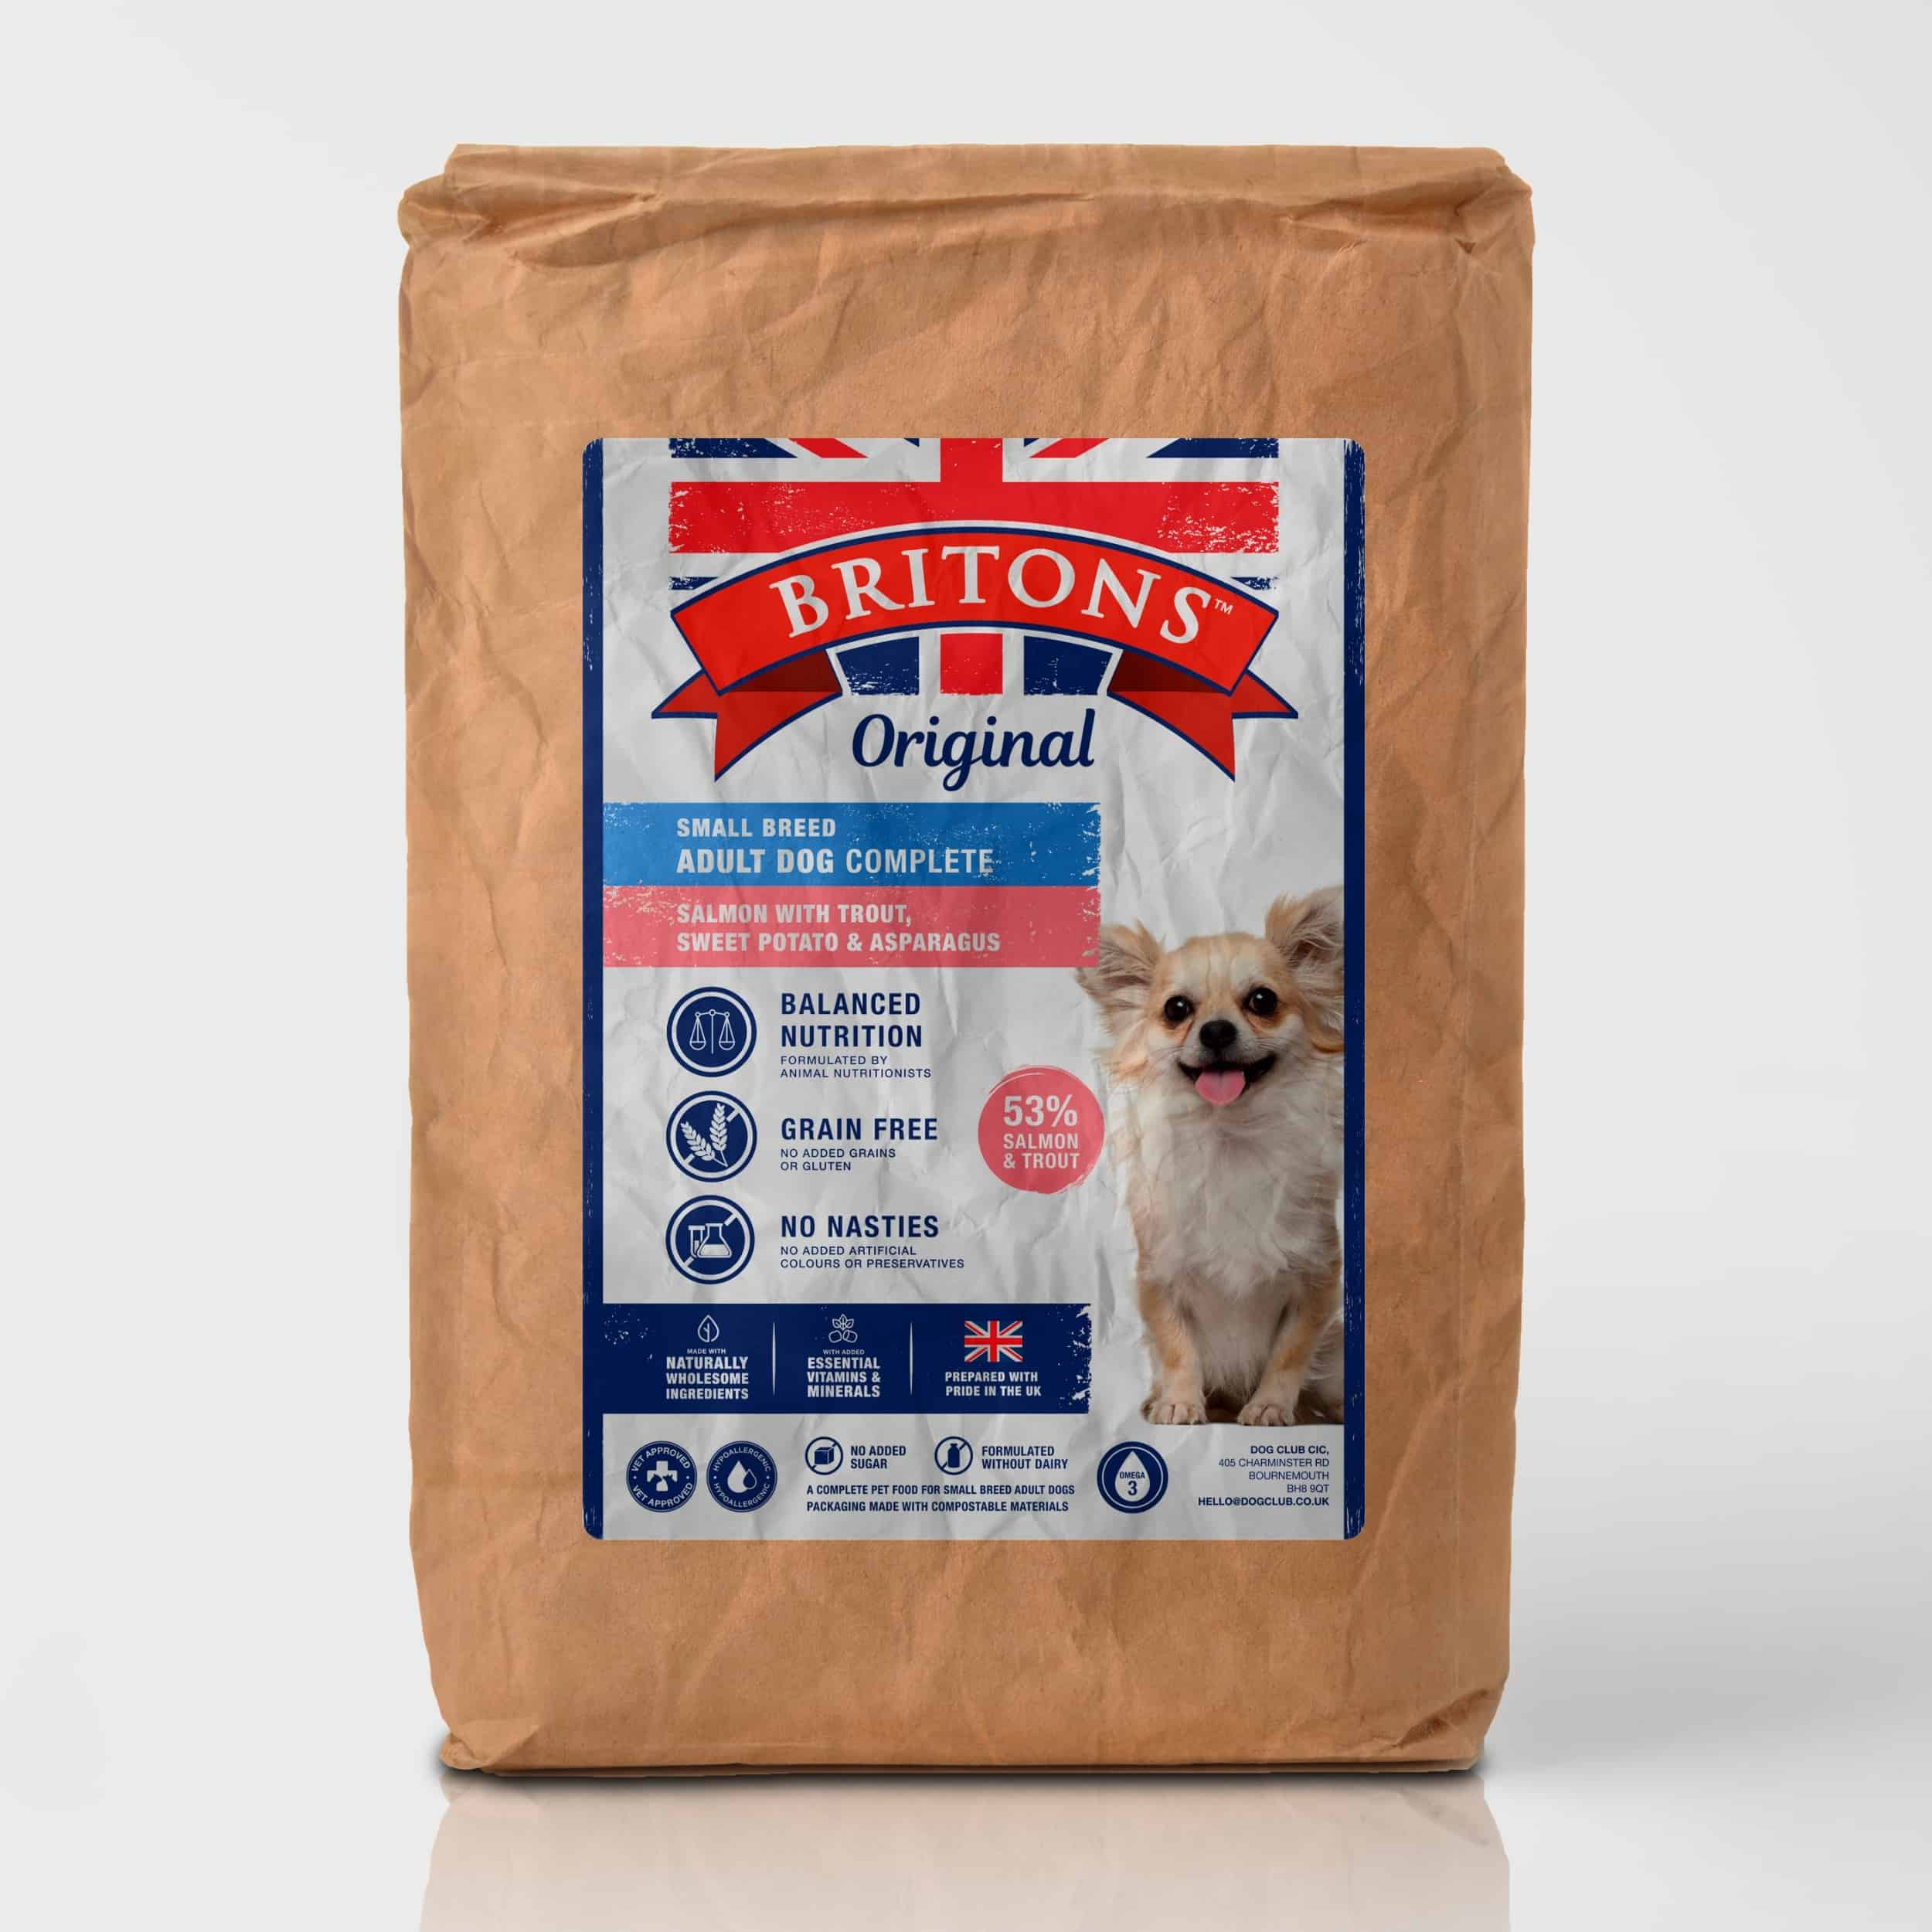 Small Breed Adult dog, grain free, complete dry food. Freshly prepared Salmon with Trout, Sweet Potato & Asparagus. Britons Original. Vet approved.